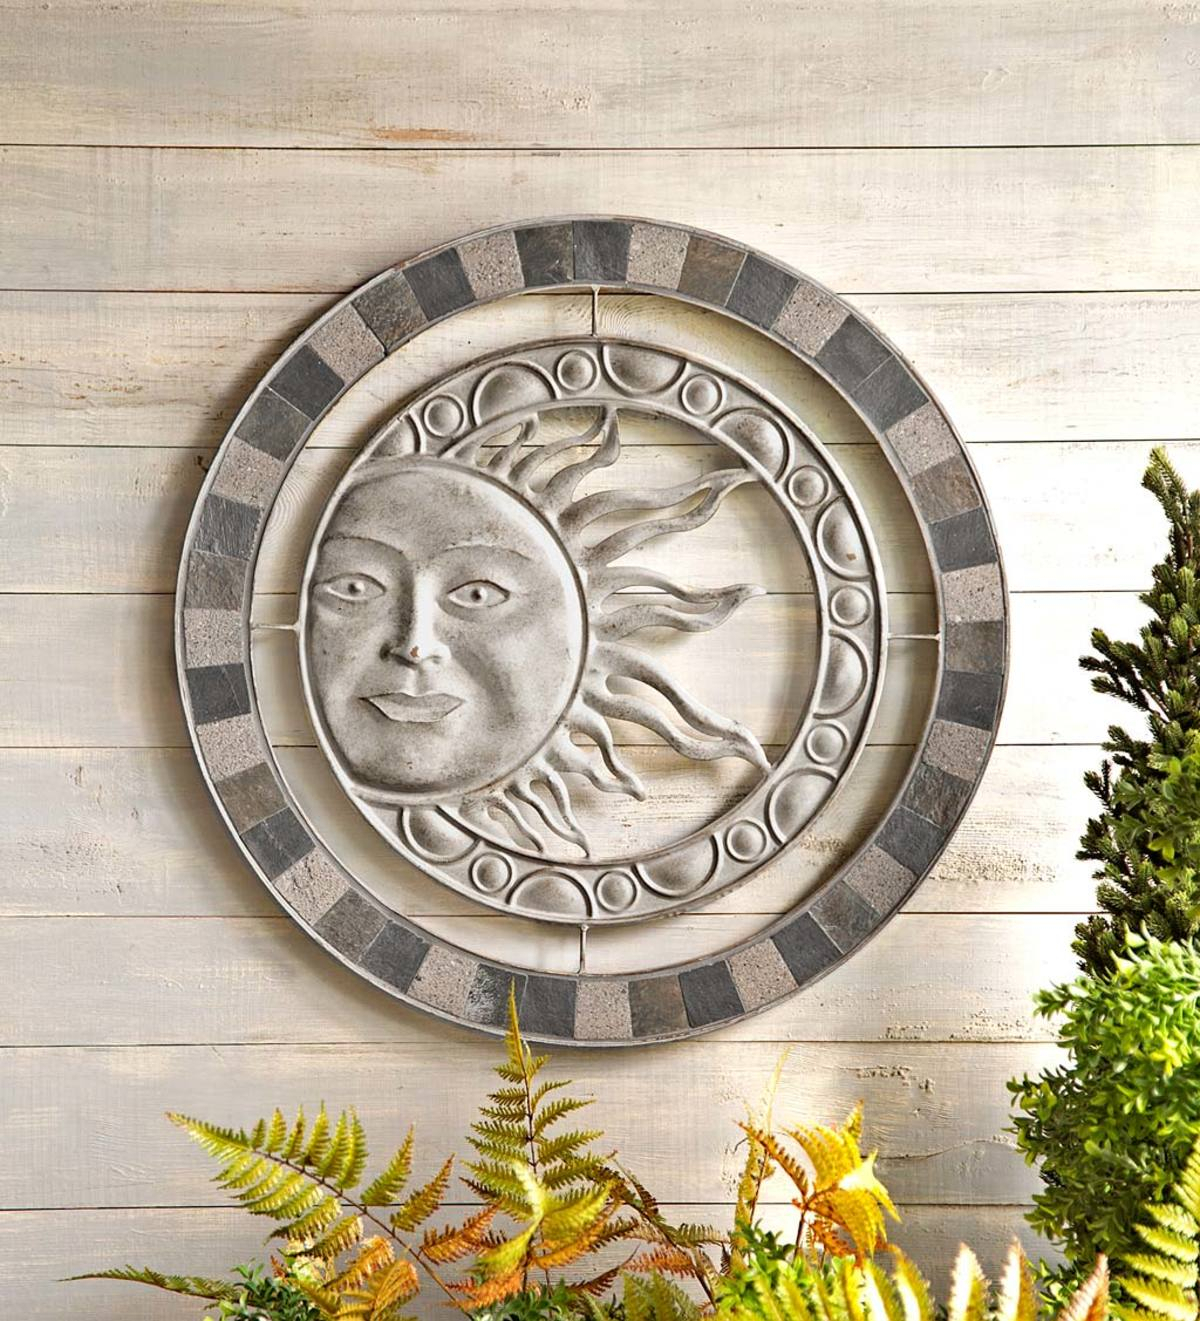 Metal And Stone Sun Wall Art | Wind And Weather For Recycled Moon And Sun Wall Decor (View 8 of 30)